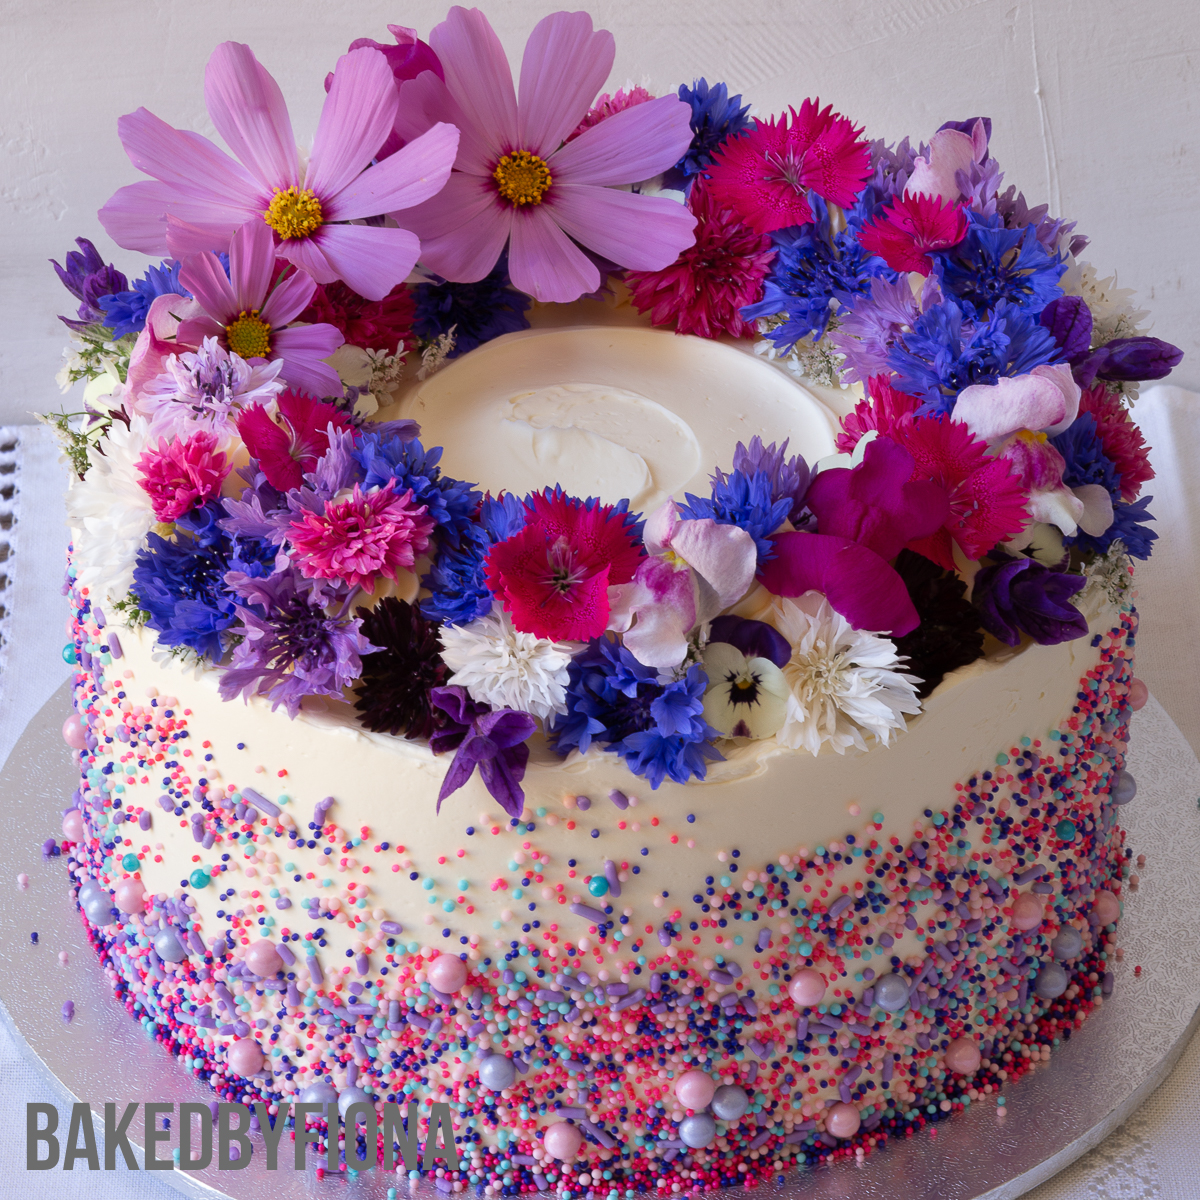 Sydney Cakes, Baked By Fiona 8in cake with flowers